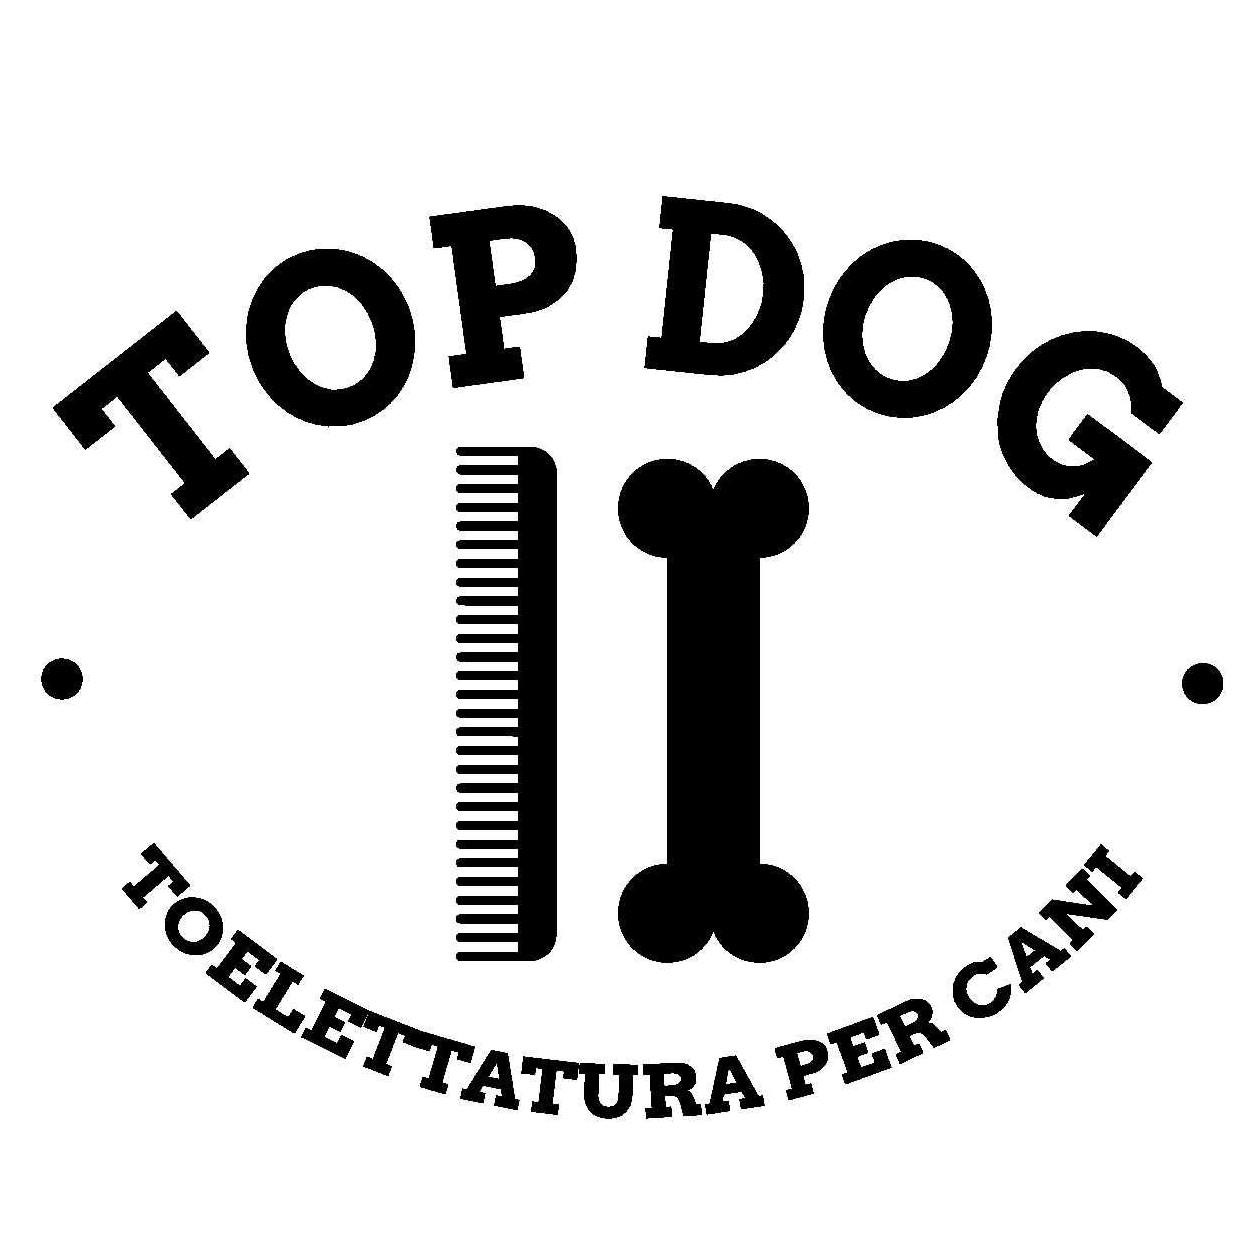 Logo - Top Dog Toelettatura